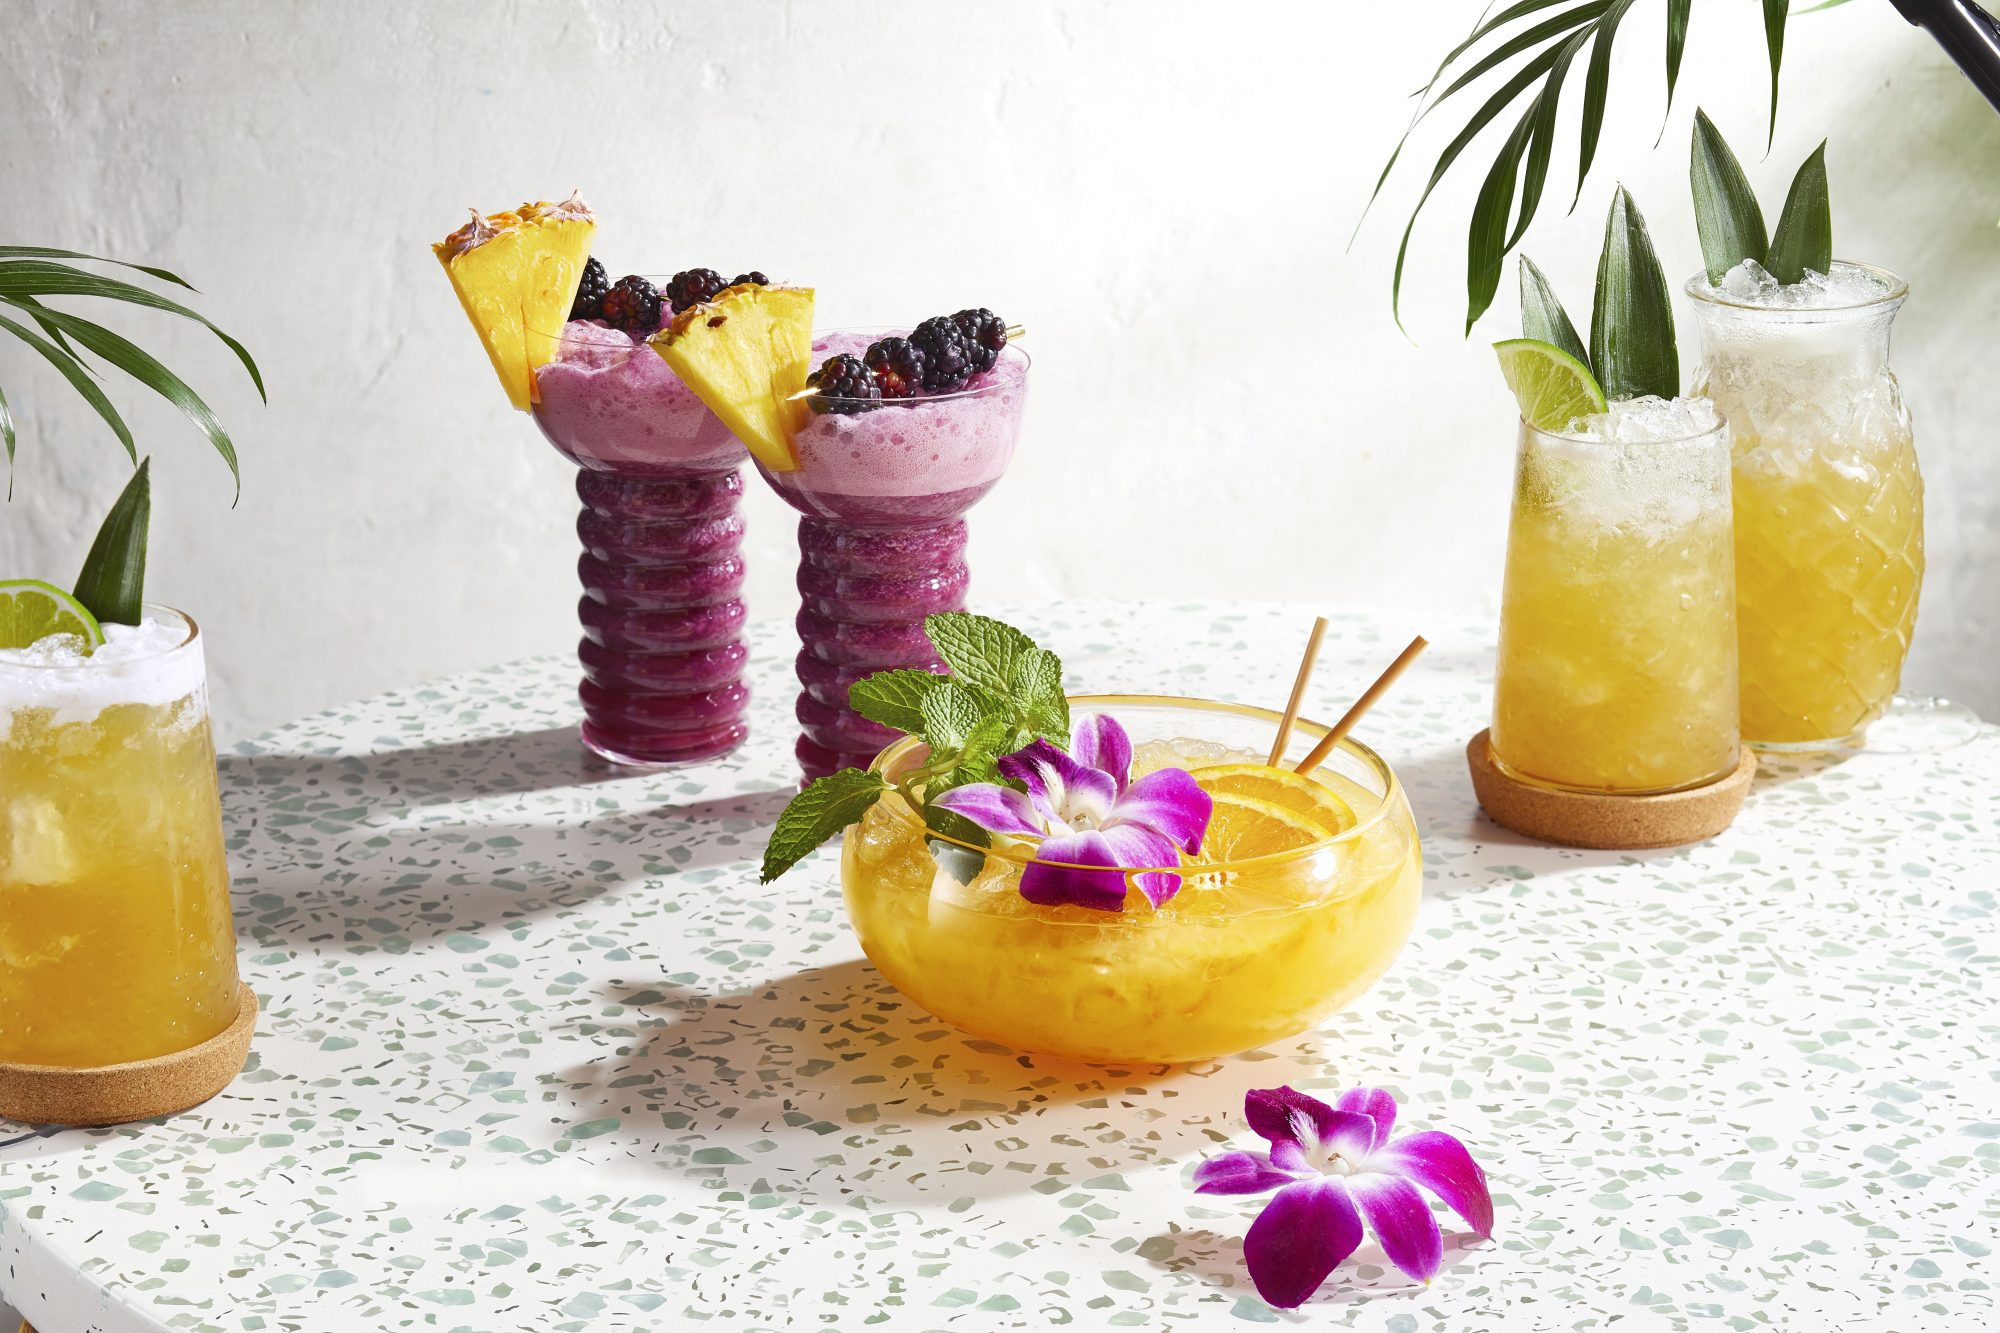 array of tropical drinks garnished with herbs, fruits, and flowers